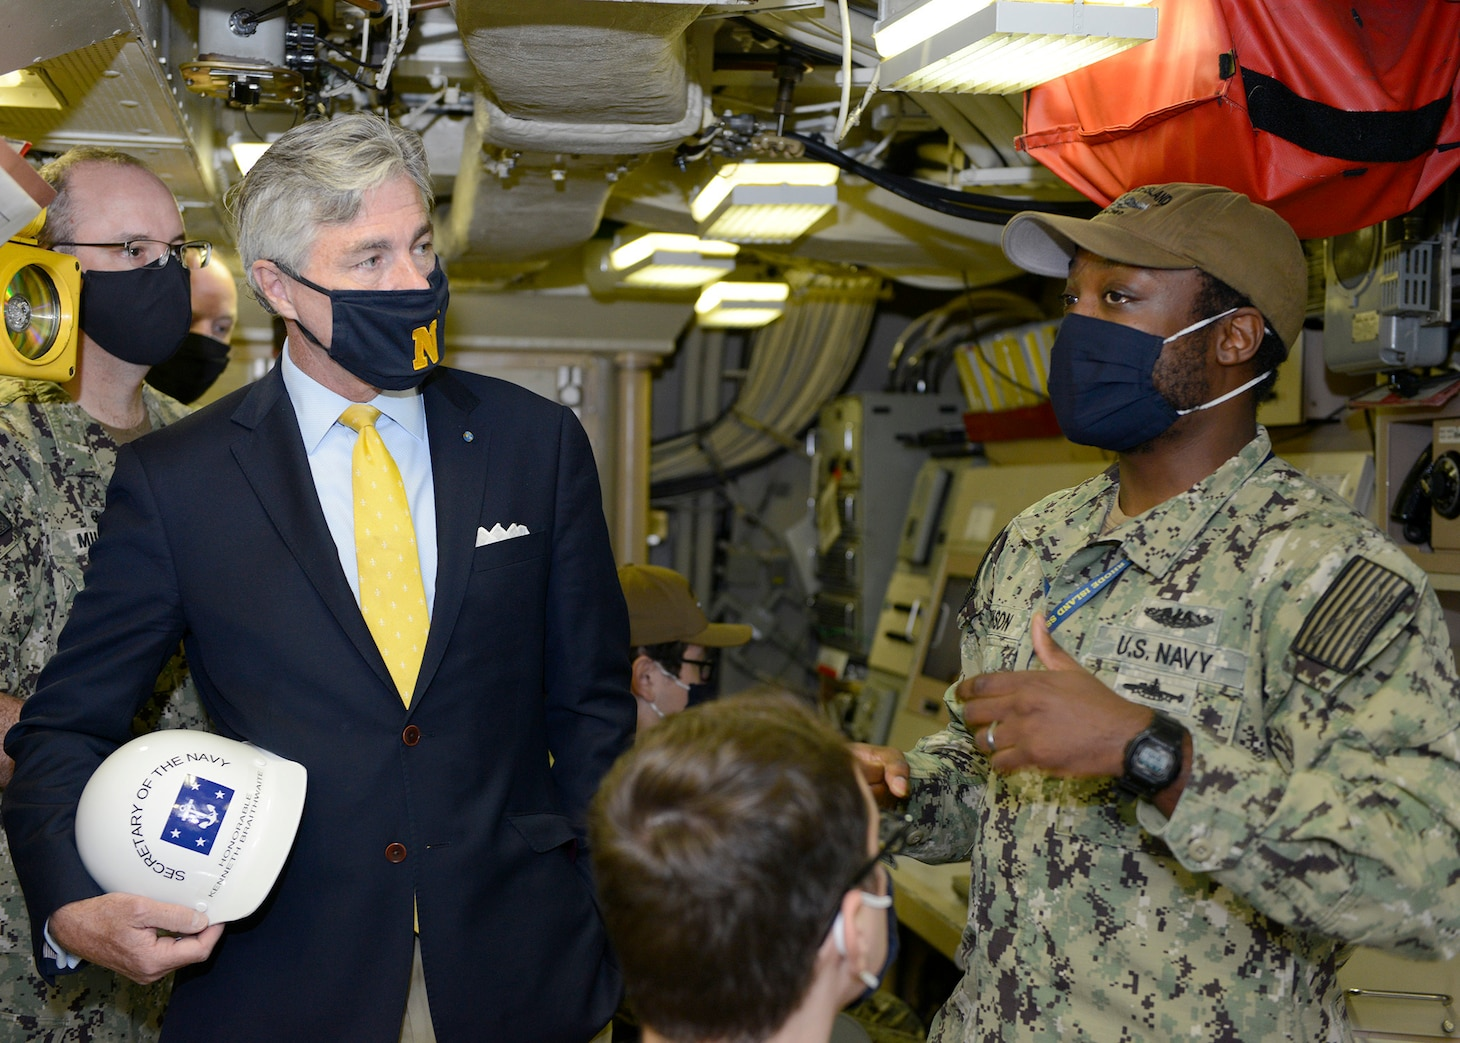 Secretary of the Navy Kenneth J. Braithwaite talks with Missile Technician 1st Class Tremayne Johnson, aboard the Ohio-class ballistic-missile submarine USS Rhode Island (SSBN 740) (Blue) in the ship's missile control center during his visit to Naval Submarine Base Kings Bay, Ga.